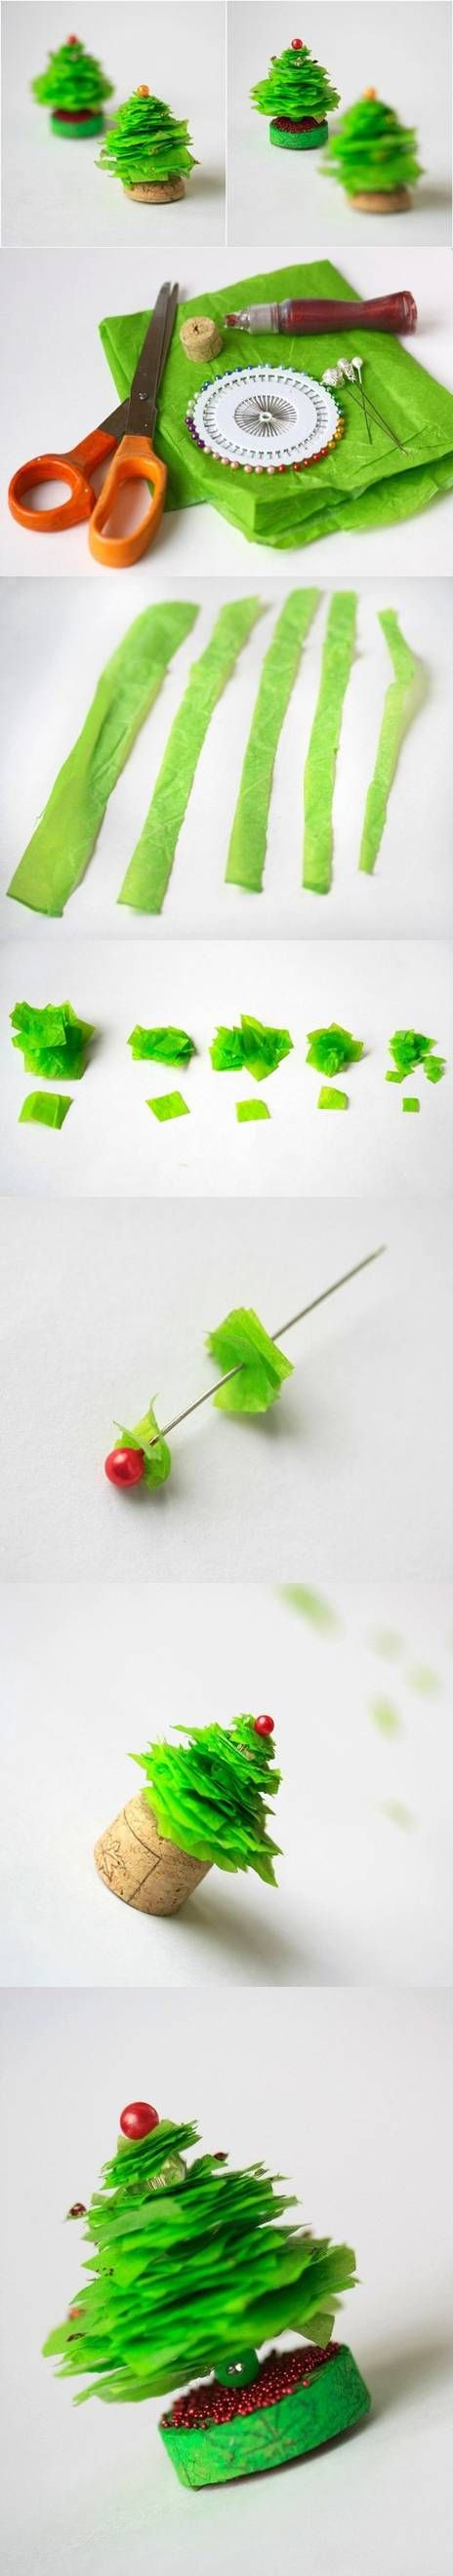 How to make Mini Christmas Tree step by step DIY tutorial instructions  for really tiny trees